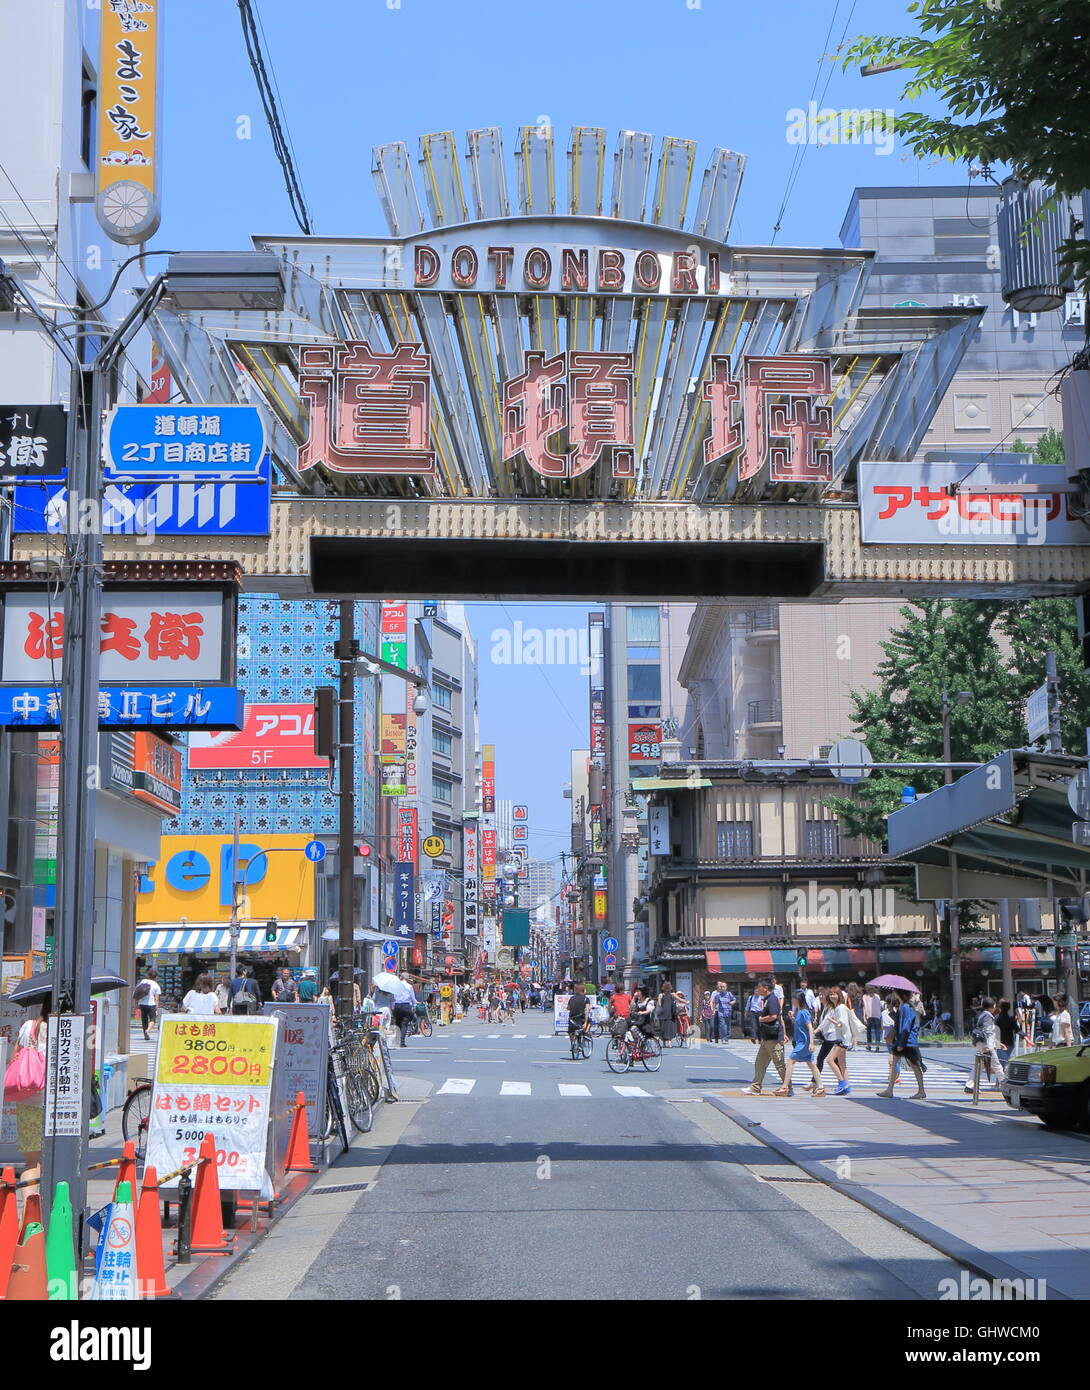 Quartier des divertissements de Dotonbori à Osaka au Japon. Photo Stock